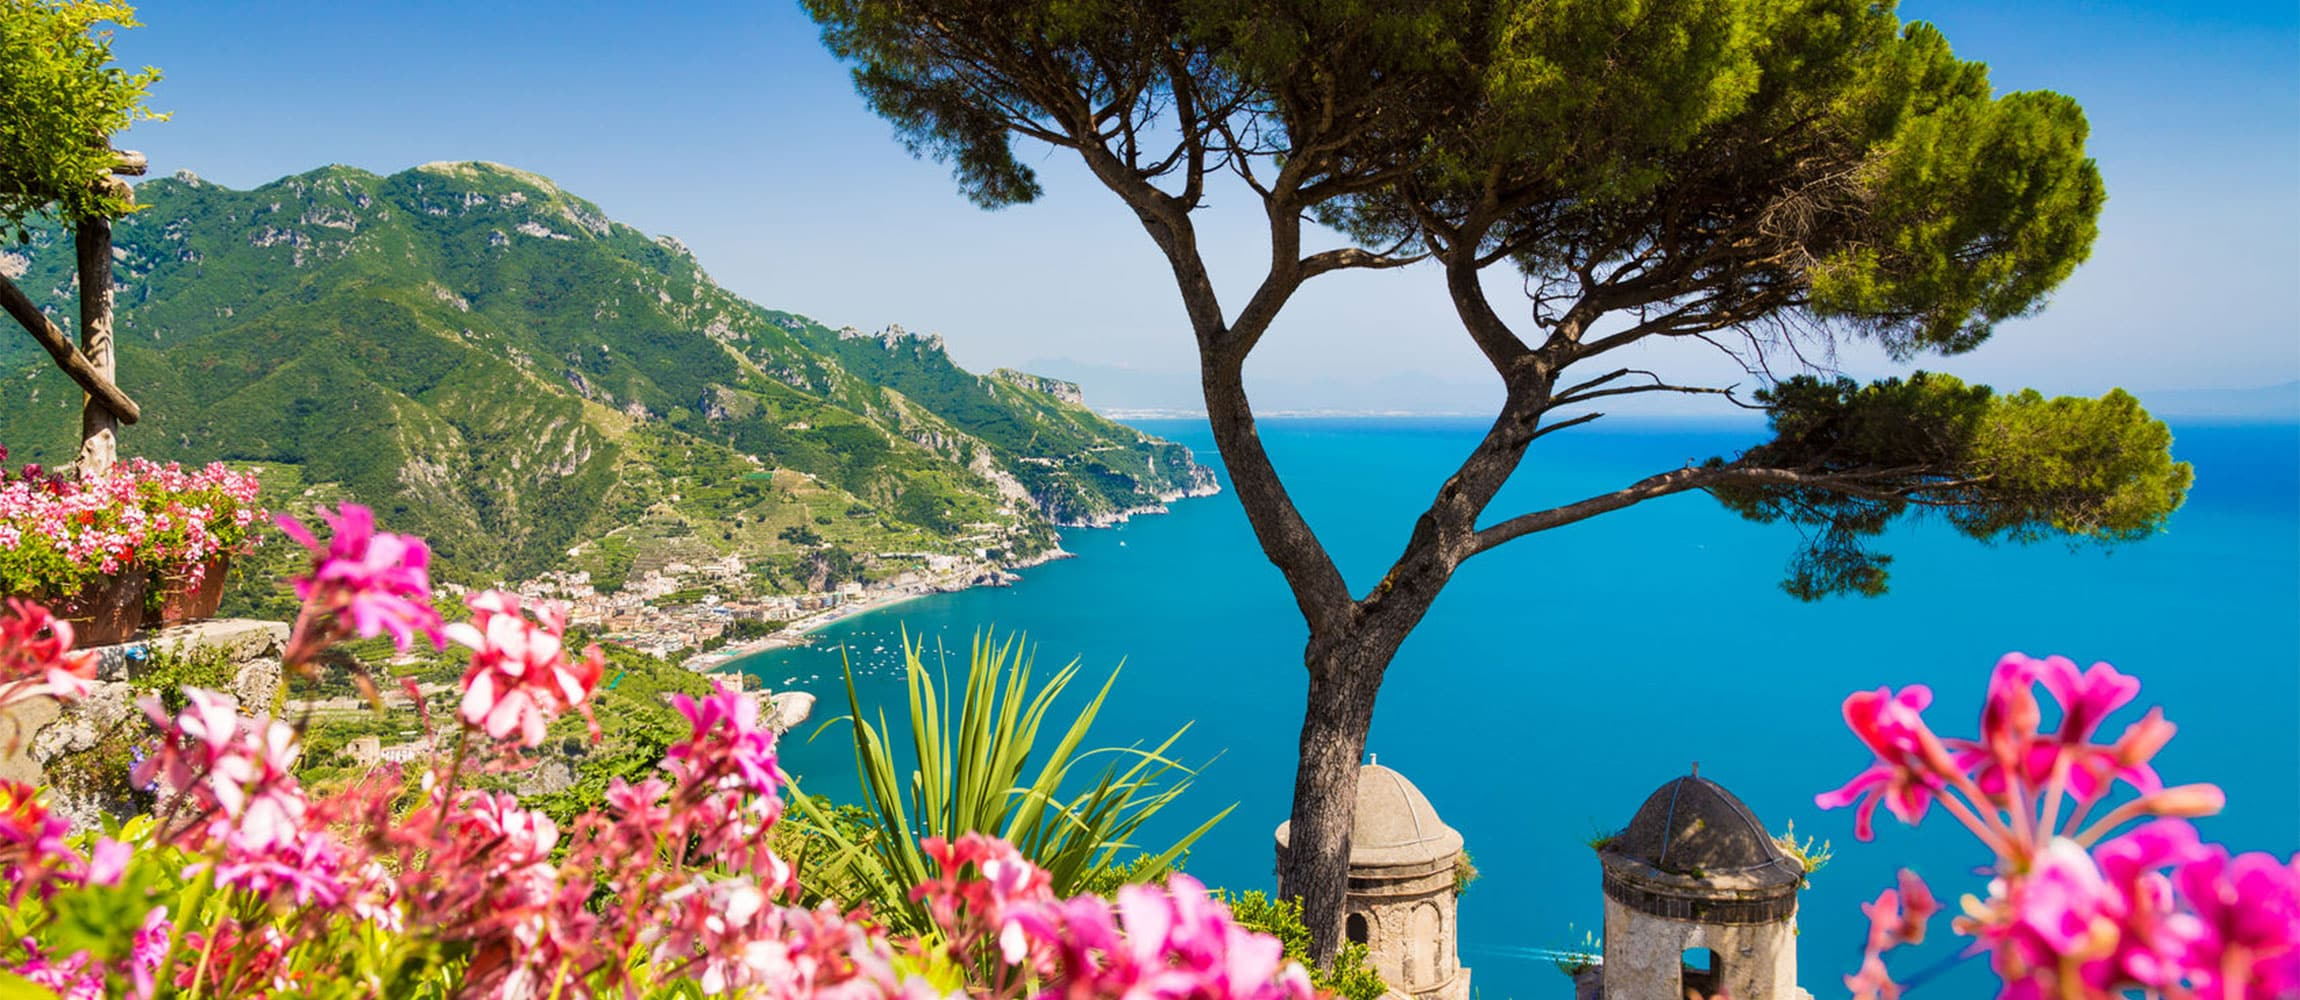 Top places to visit Naples | Private Taxi City Tour Naples from Cruise Ships